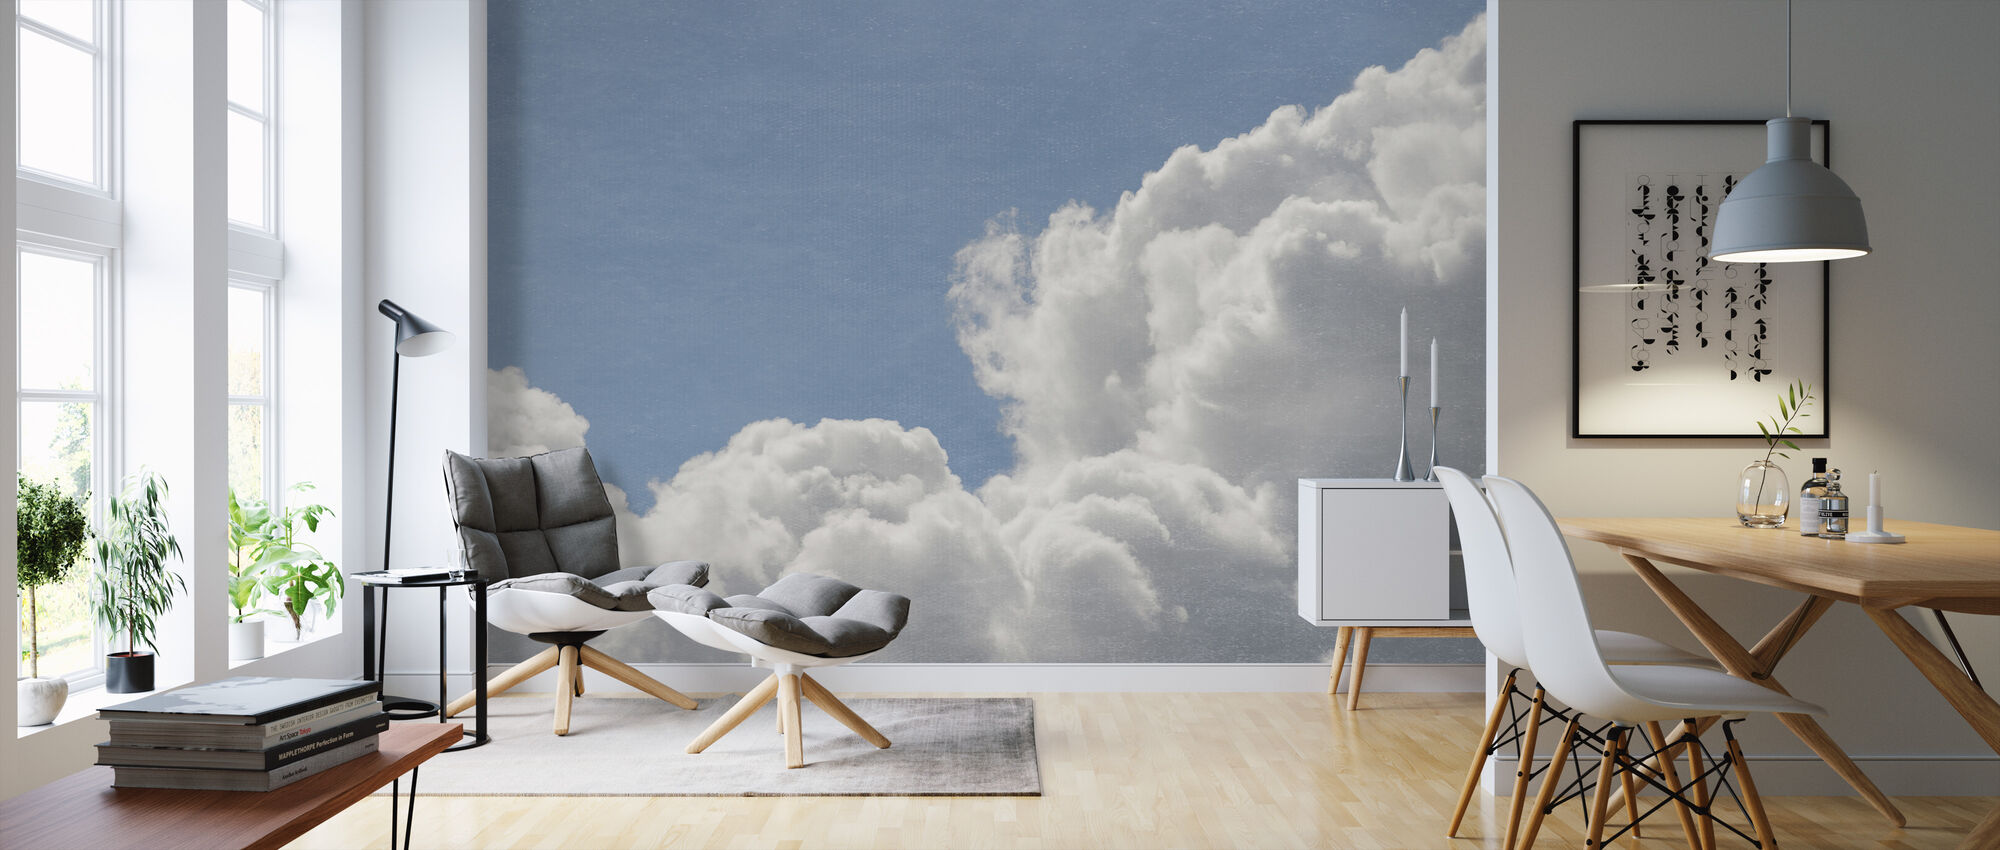 Blush Clouds Filter - Wallpaper - Living Room